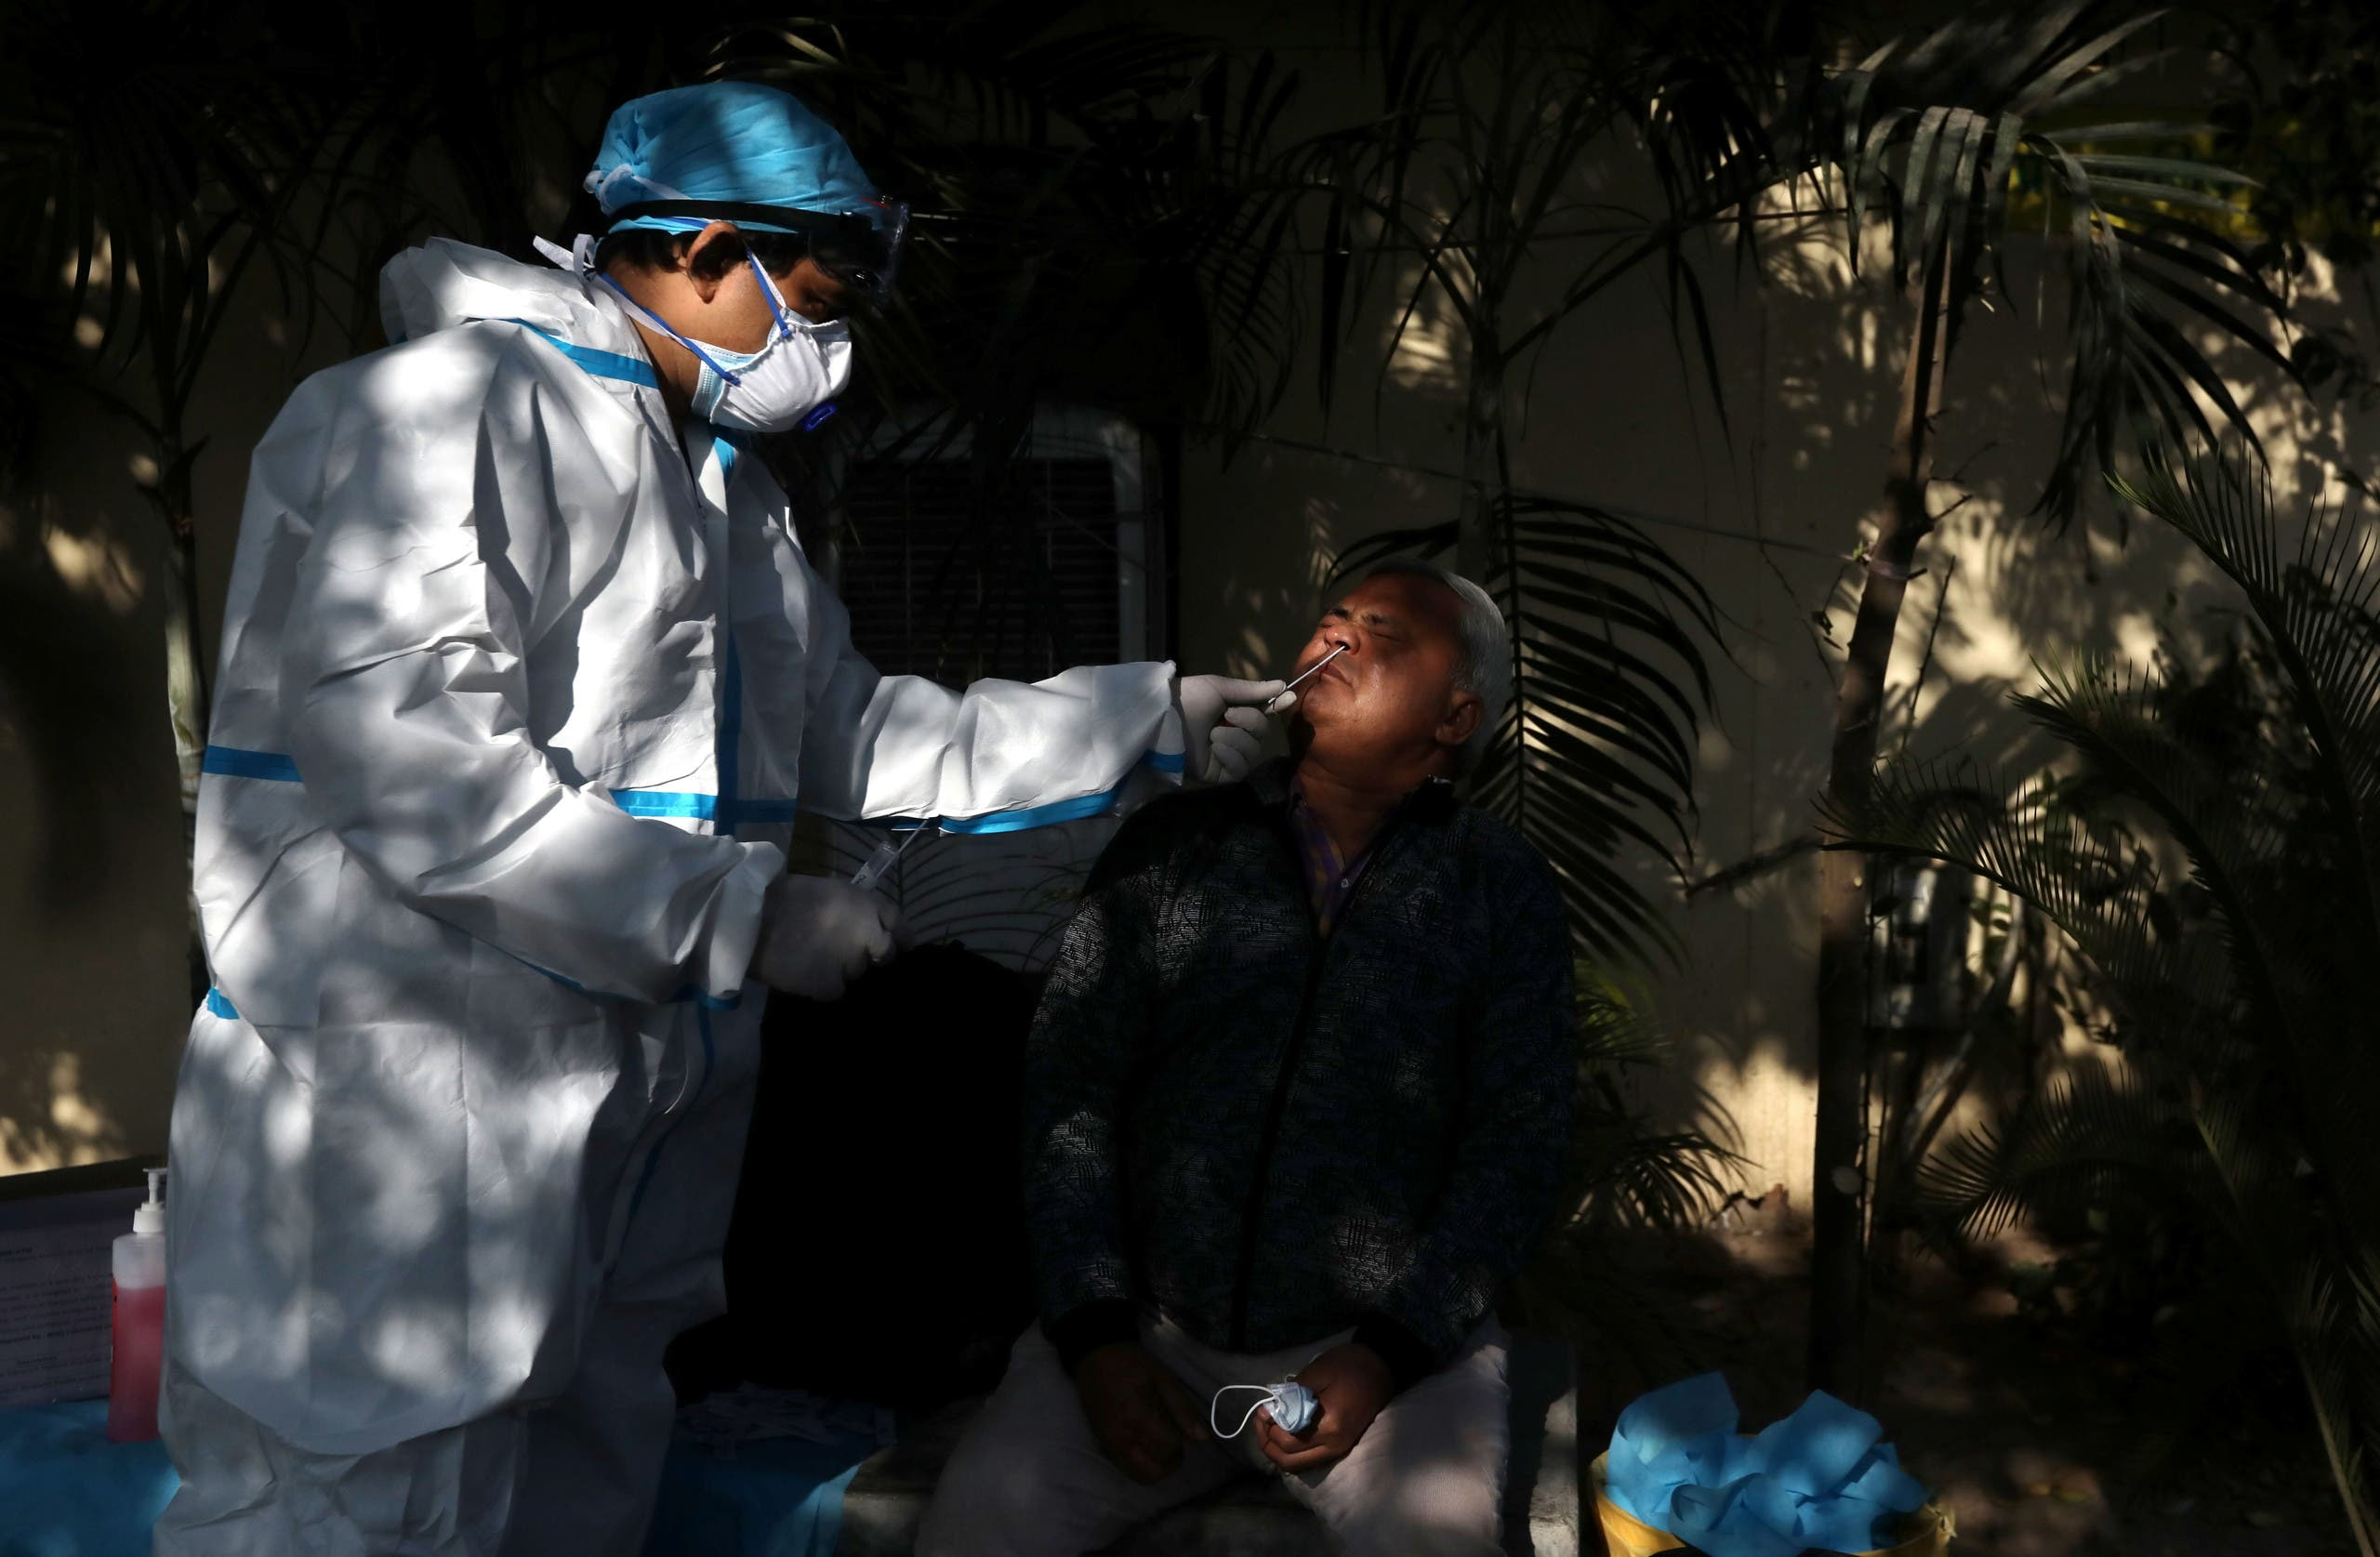 A healthcare worker wearing personal protective equipment (PPE) collects a swab sample from a man amidst the spread of the coronavirus disease (COVID-19), at a bus depot in New Delhi, India, December 14, 2020. (Reuters)